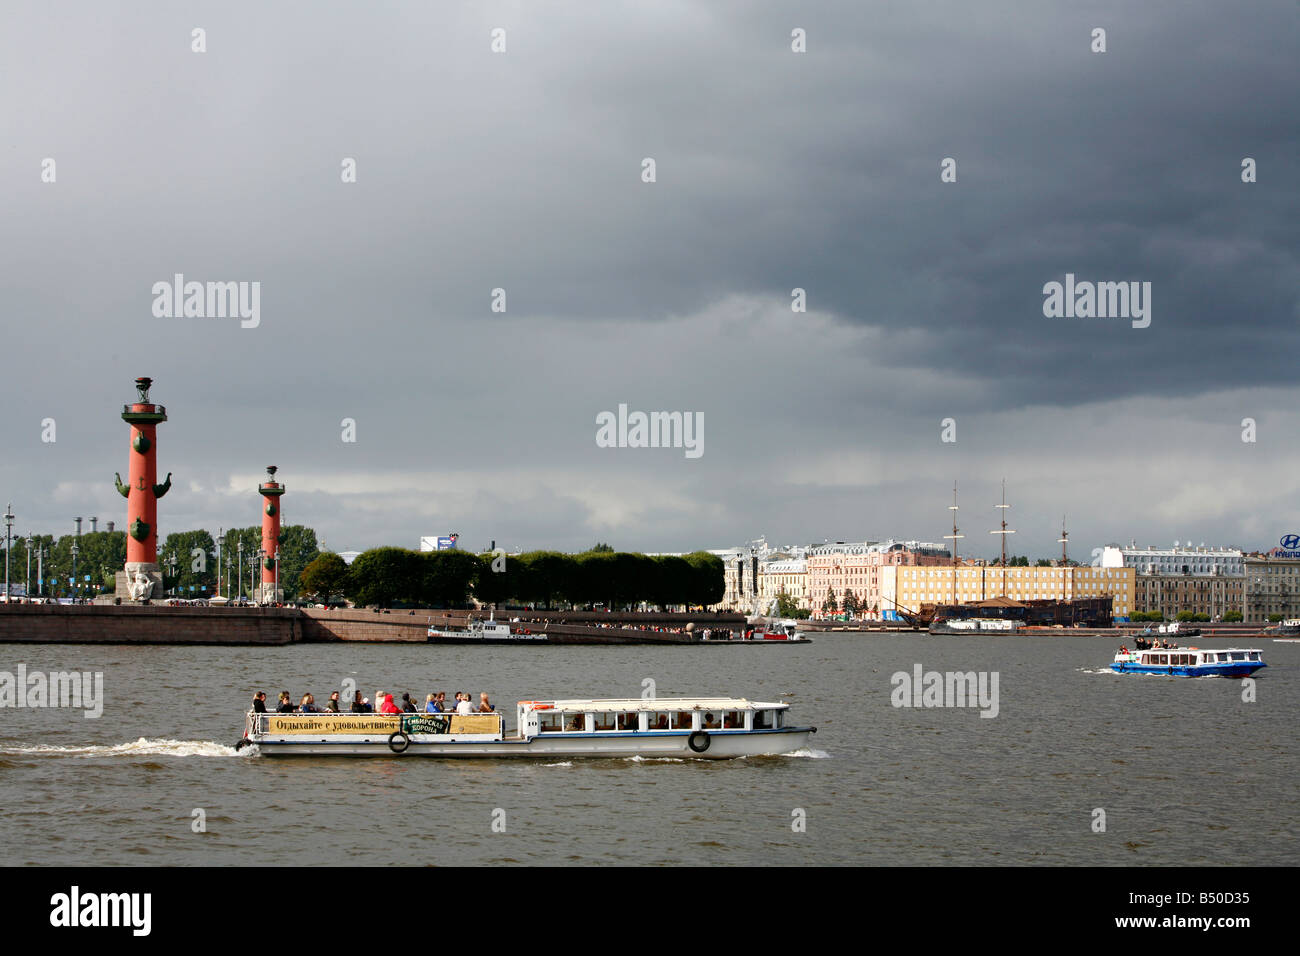 Aug 2008 - Boat sailing in the Neva River St Petersburg Russia - Stock Image